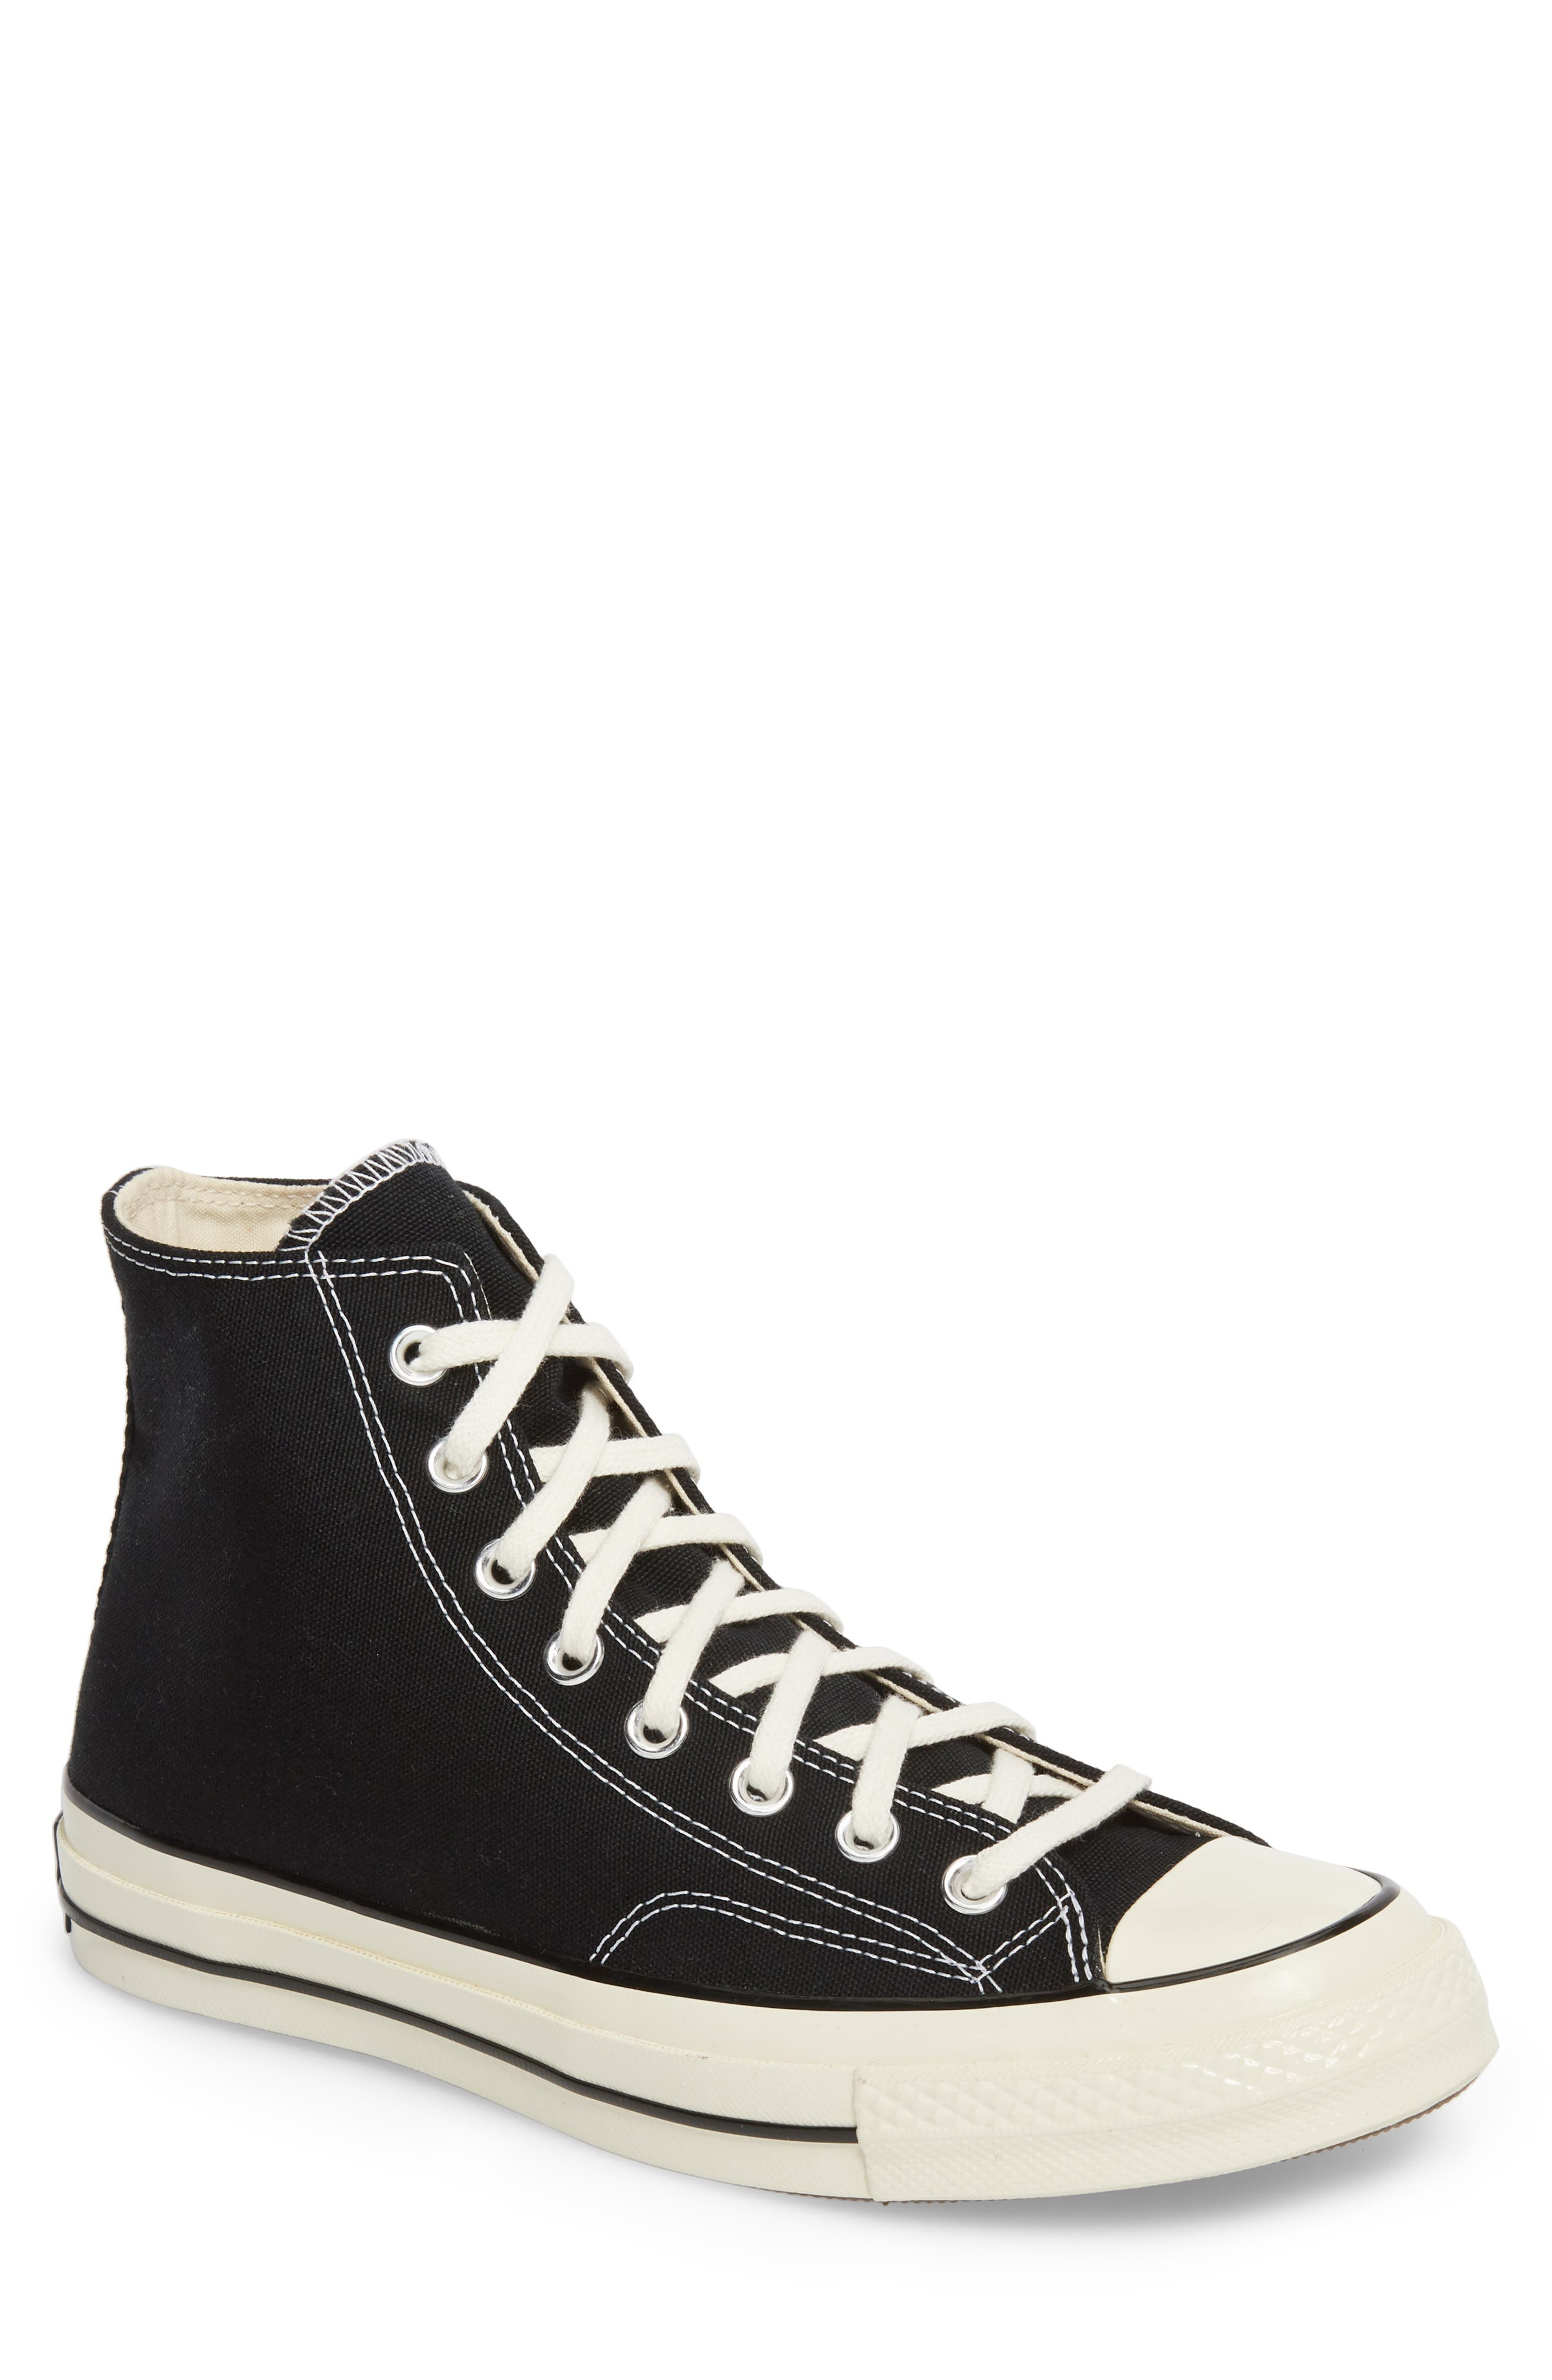 13749125c8b3ac Converse - Men s Casual Fashion Shoes and Sneakers